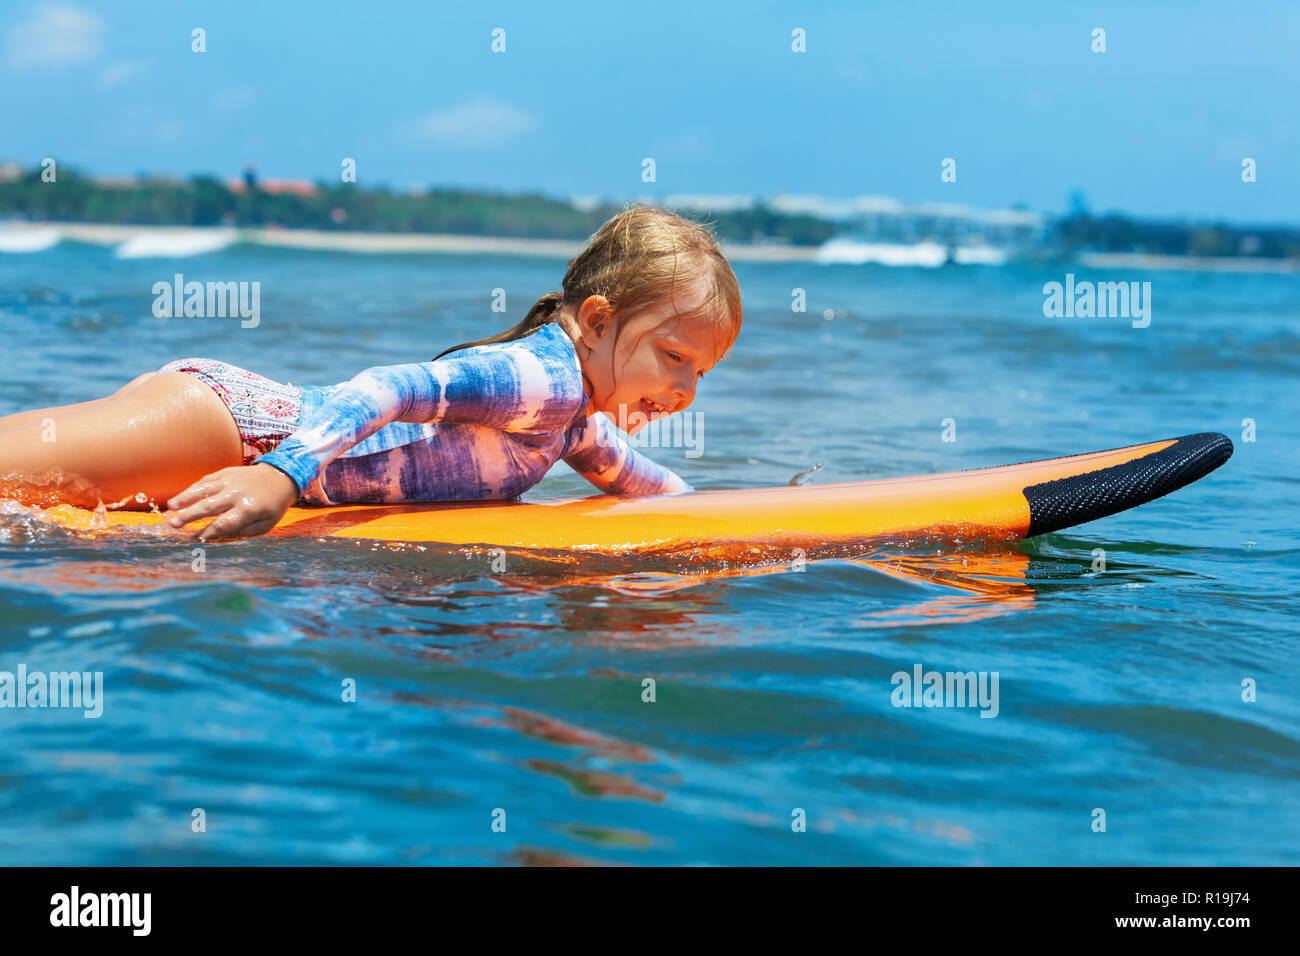 Happy baby girl - young surfer paddle on surfboard with fun on sea waves. Active family lifestyle, kids outdoor water sport lessons, swimming activity - Stock Image